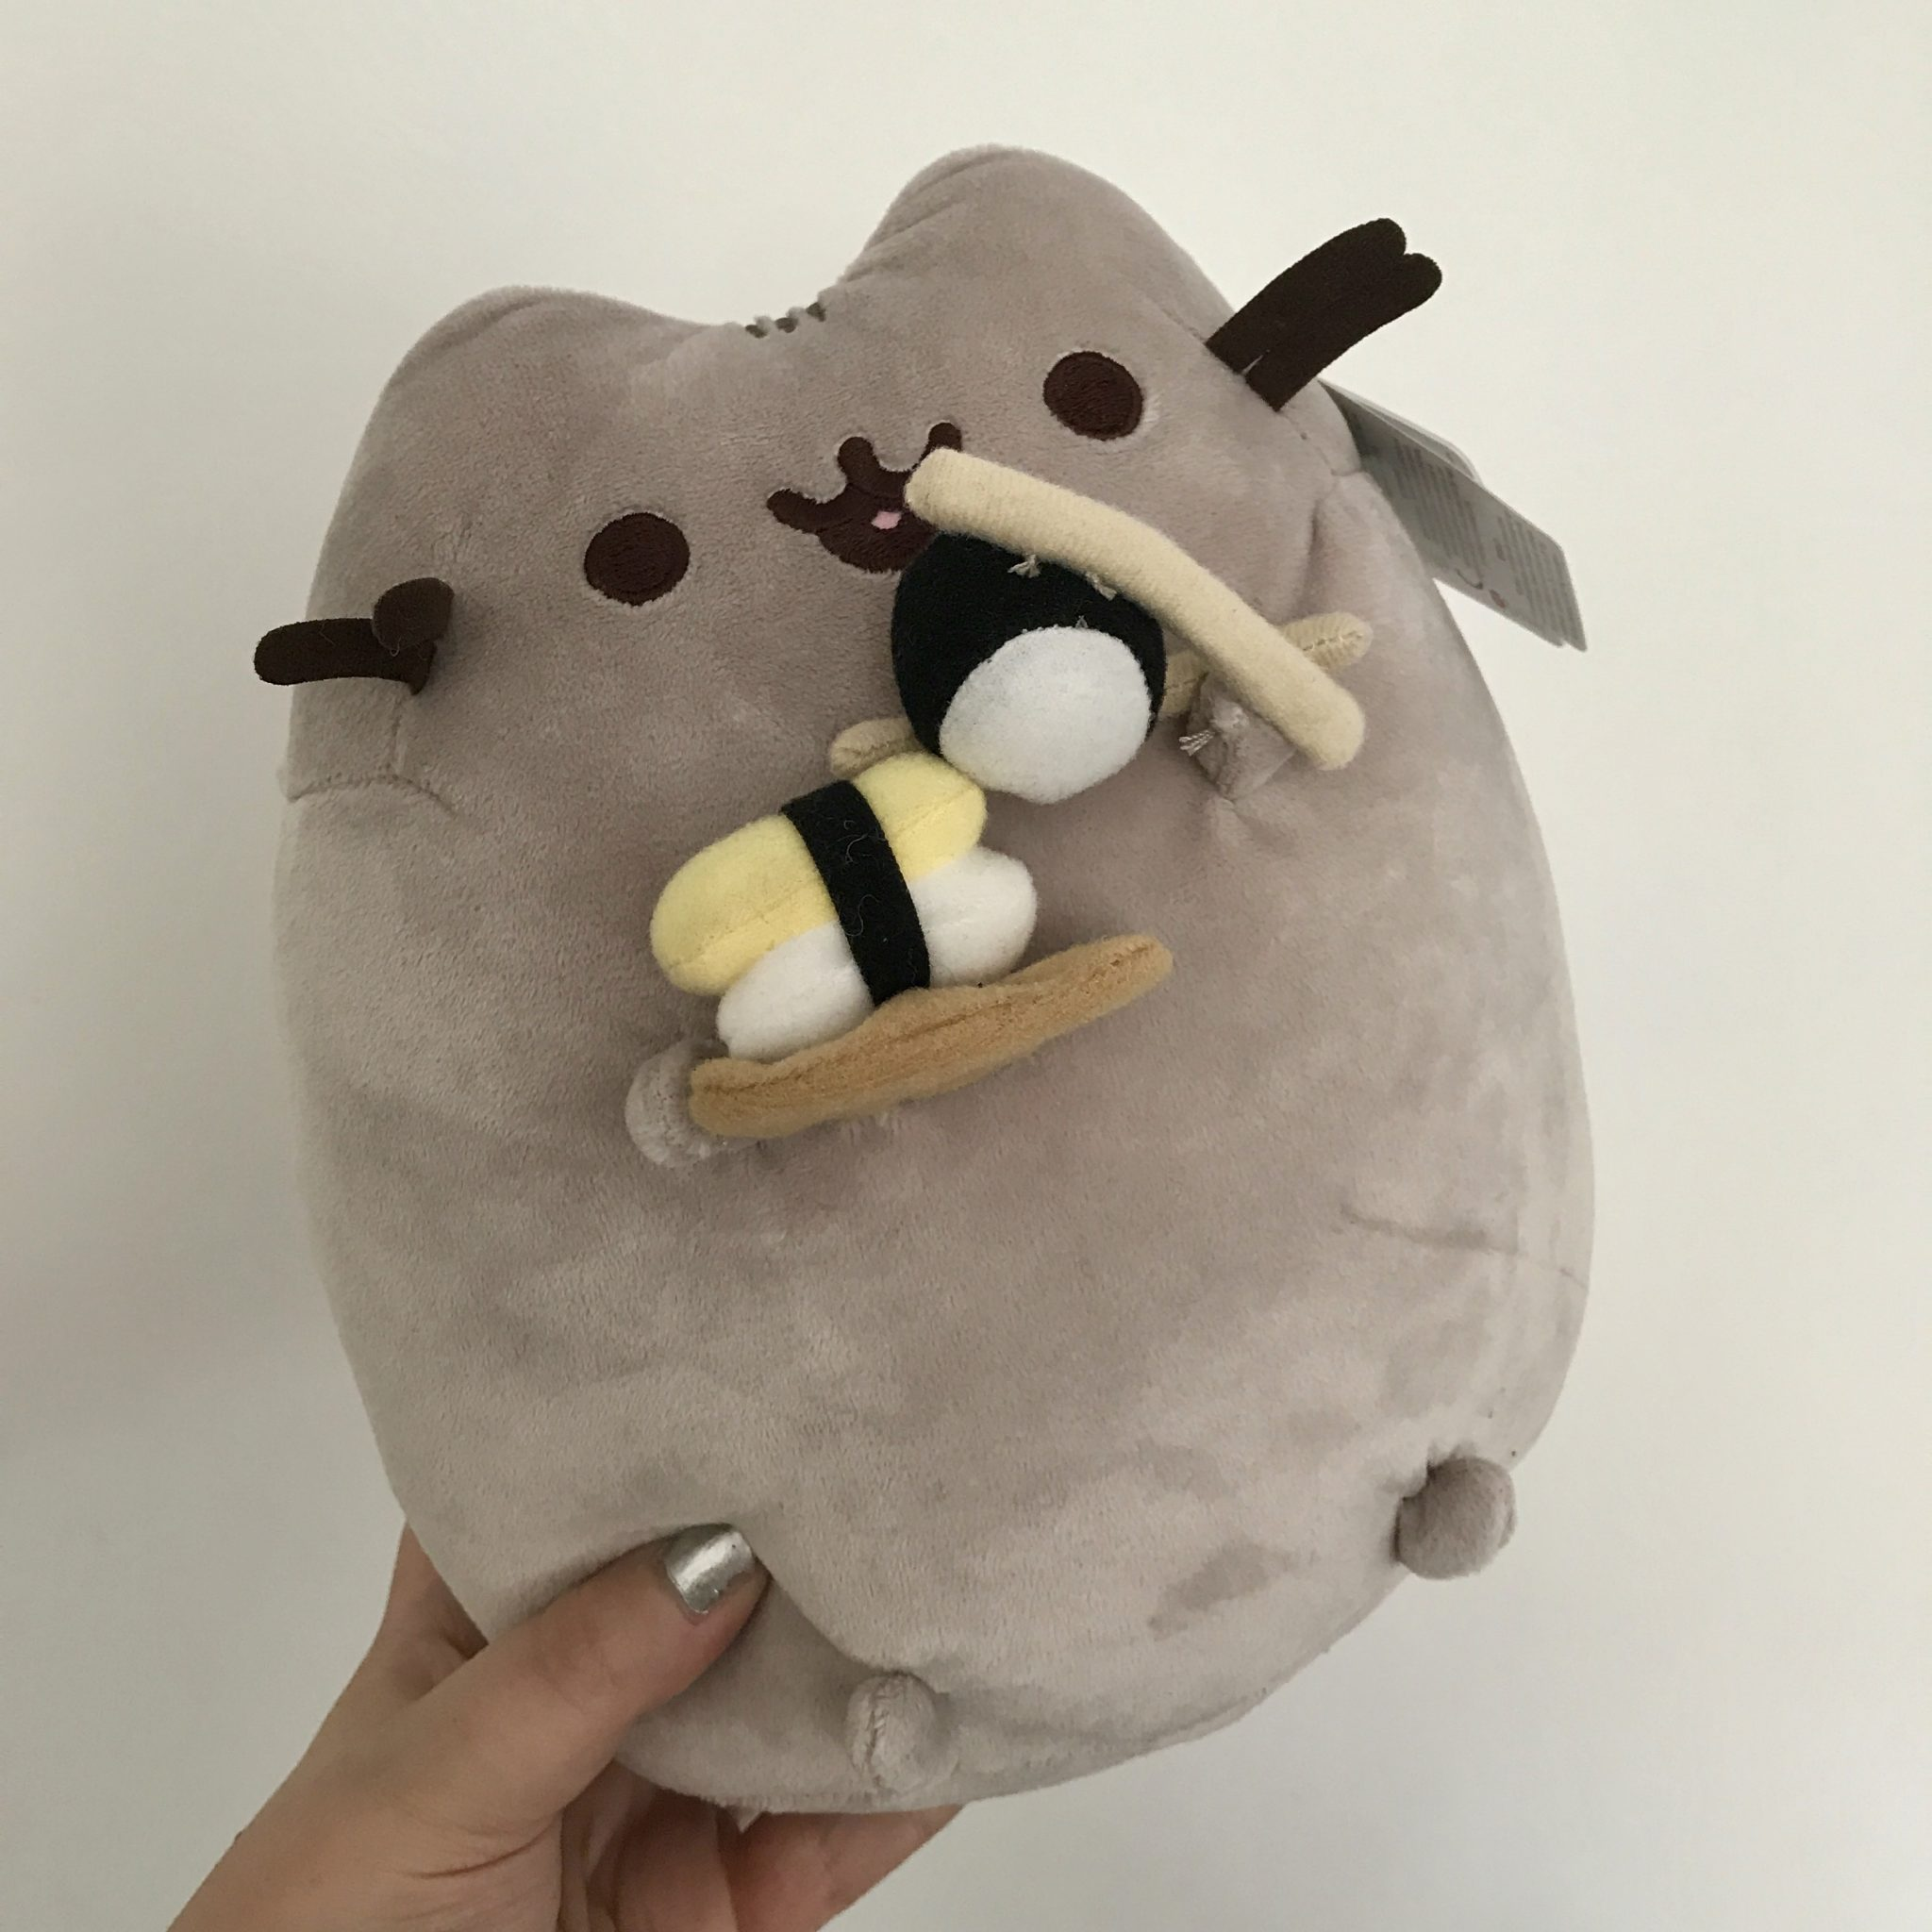 Sushi Pusheen - The cutest soft toy around